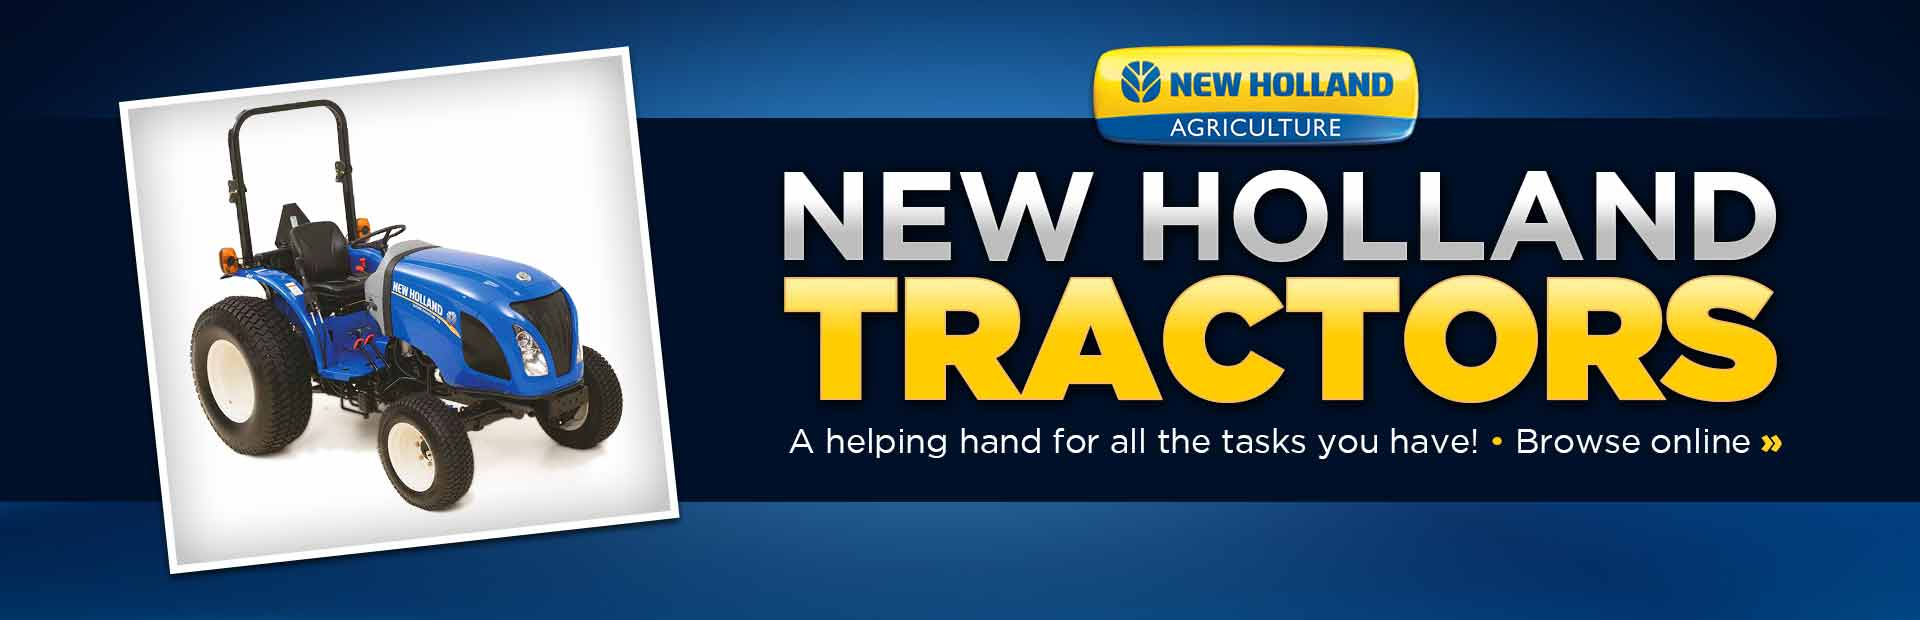 Click here to view New Holland tractors.